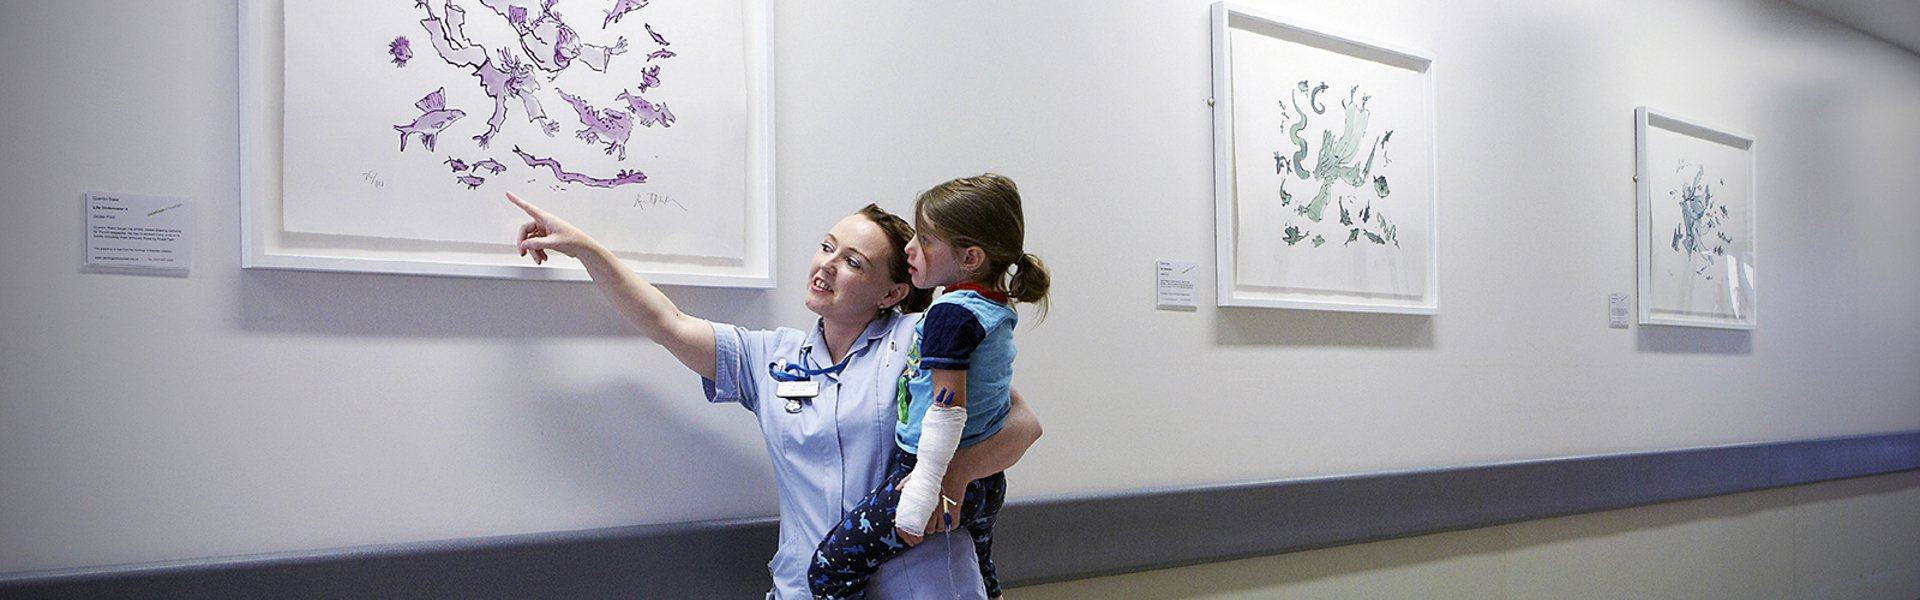 A young patient in the arms of a nurse captivated by Life Under Water 4, 5 and 6 by Quentin Blake. Part of the Paintings in Hospitals collection.